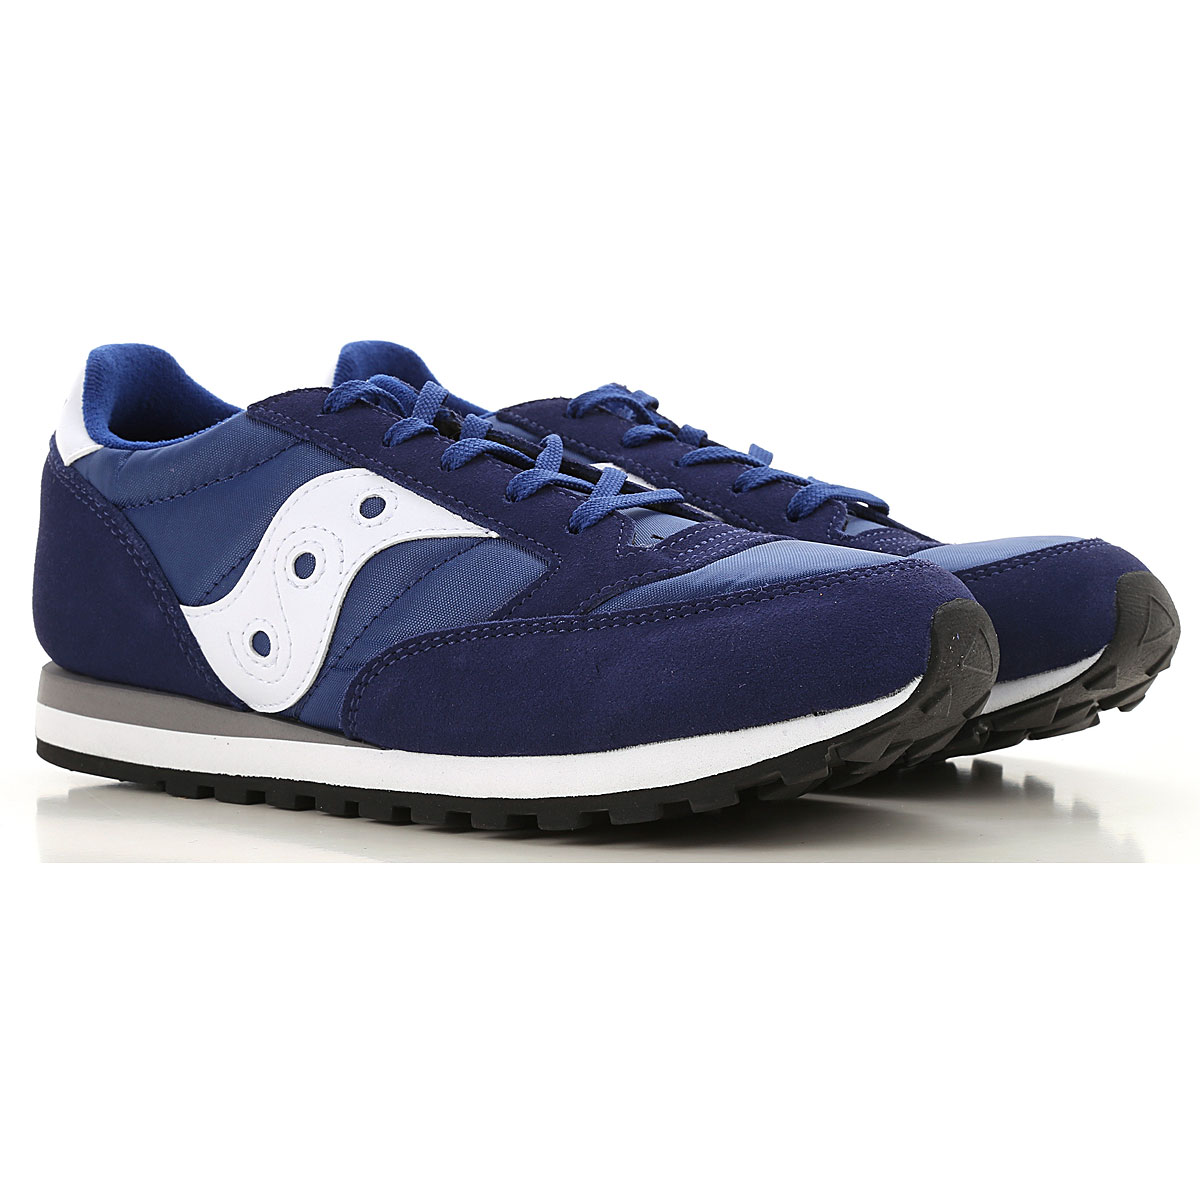 Image of Saucony Kids Shoes for Boys, Blue, Suede leather, 2017, UK 3 - EUR 35.5 UK 3.5 - EUR 36 UK 4 - EUR 36.5 UK 4.5 - EUR 37.5 UK 5 - EUR 38